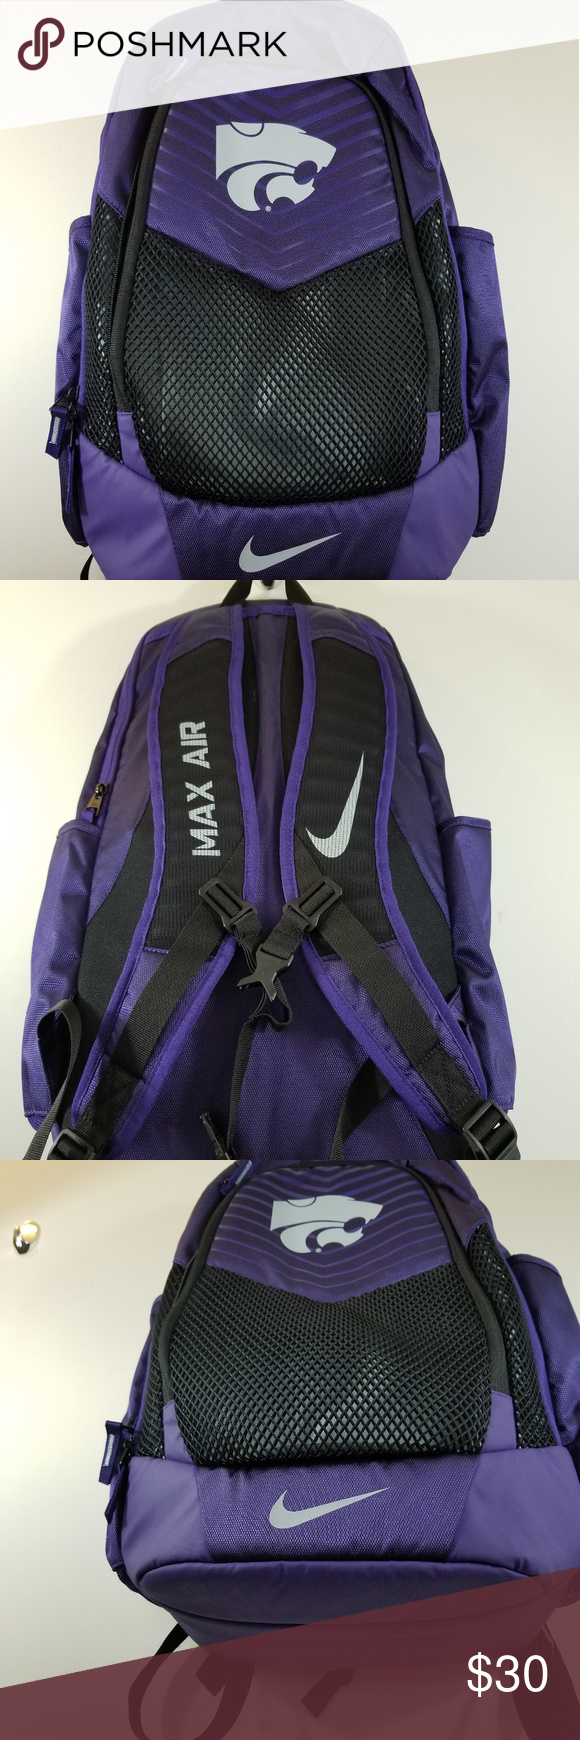 aff76936d01d Purple Mesh Nike Backpack- Fenix Toulouse Handball